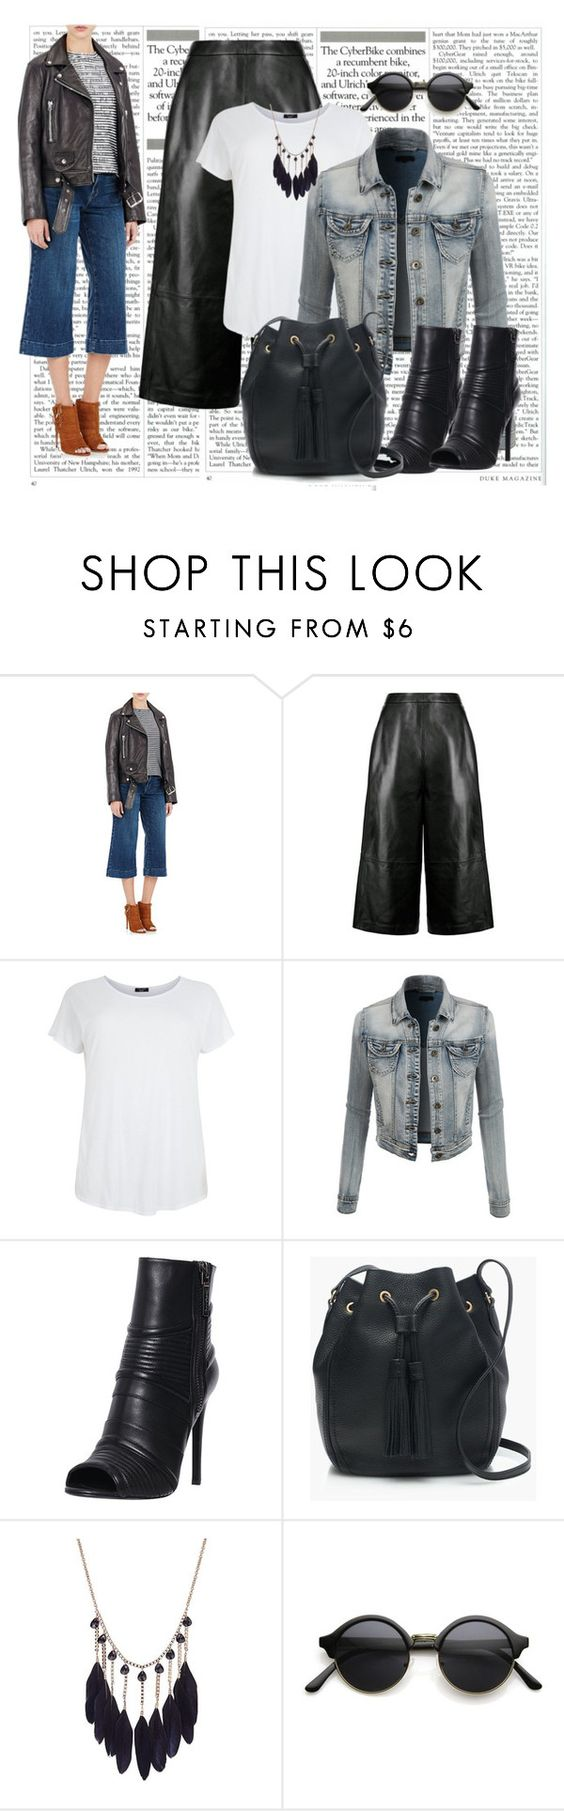 """casual"" by ebramos ❤ liked on Polyvore featuring мода, J Brand, Whistles, LE3NO, Pierre Balmain, J.Crew, women's clothing, women's fashion, women и female"